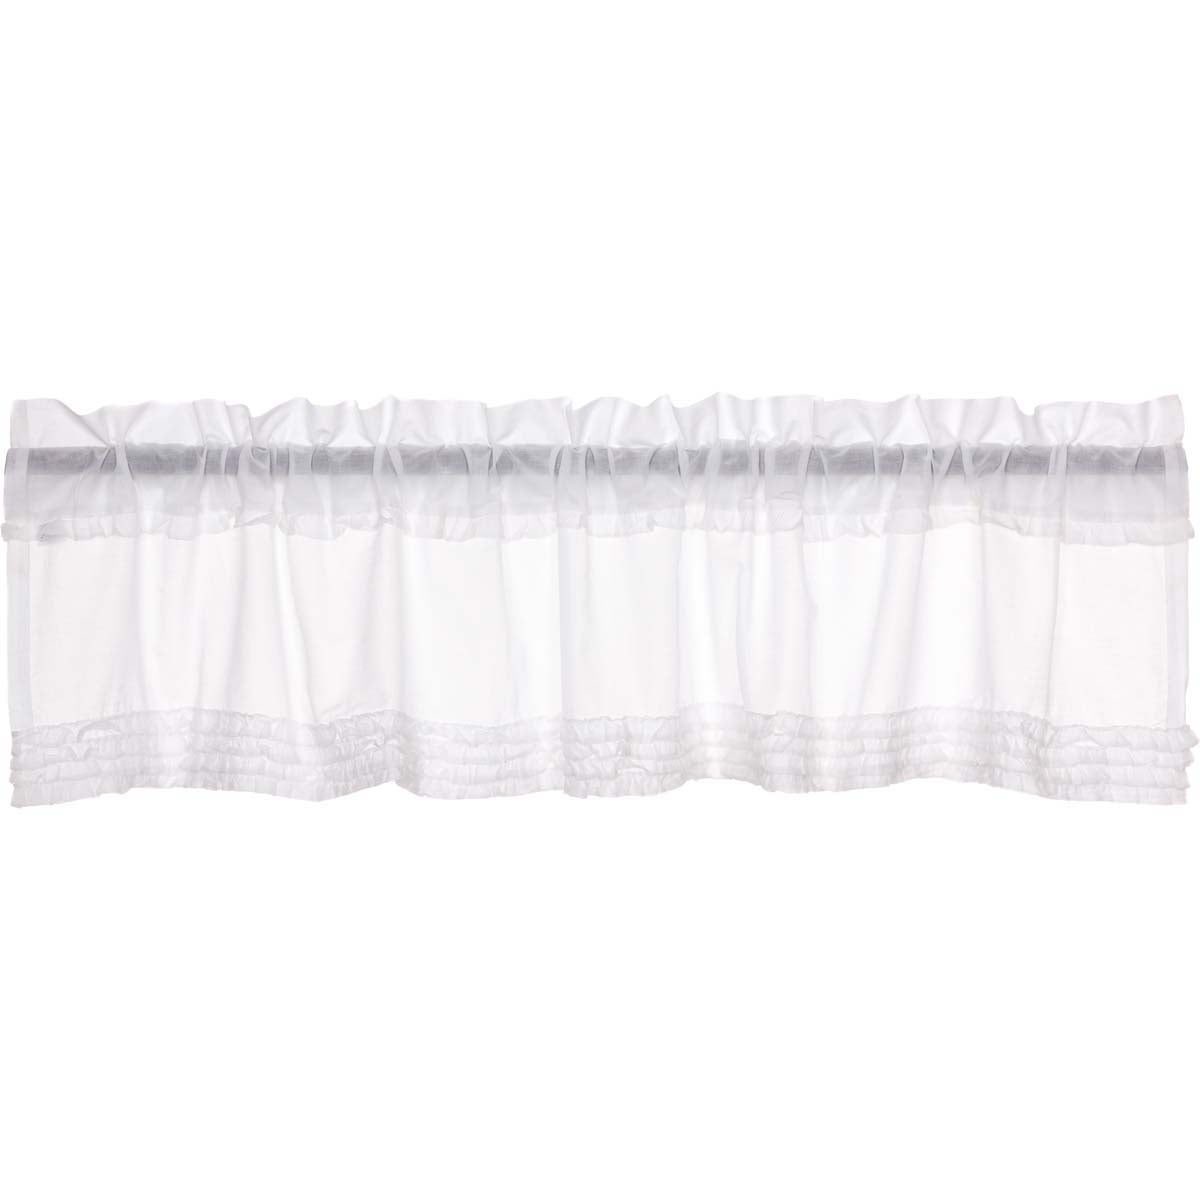 Best And Newest Rod Pocket Cotton Solid Color Ruched Ruffle Kitchen Curtains With White Farmhouse Kitchen Curtains Vhc White Ruffled Sheer Valance Rod Pocket Cotton Solid Color Ruffling Sheer (View 9 of 20)